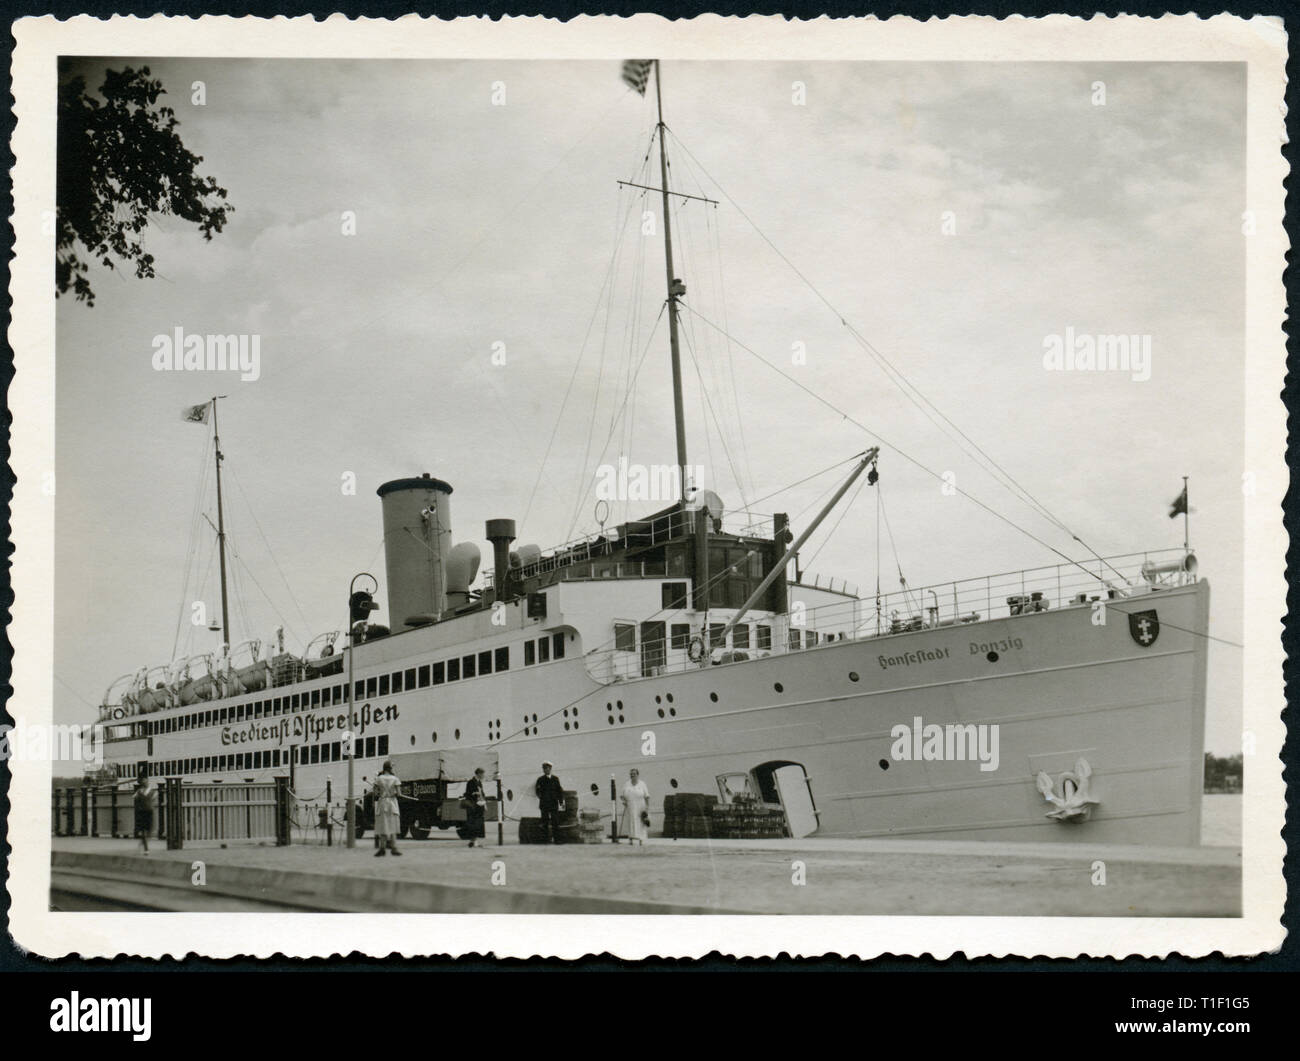 """Germany, passenger ship of the """" Seedienst Ostpreußen """" (sea service East Prussia), called """" Hansestadt Danzig"""", in Swinemünde, July 1935, today Poland, West Pomeranien, Swinoujscie, Additional-Rights-Clearance-Info-Not-Available Stock Photo"""